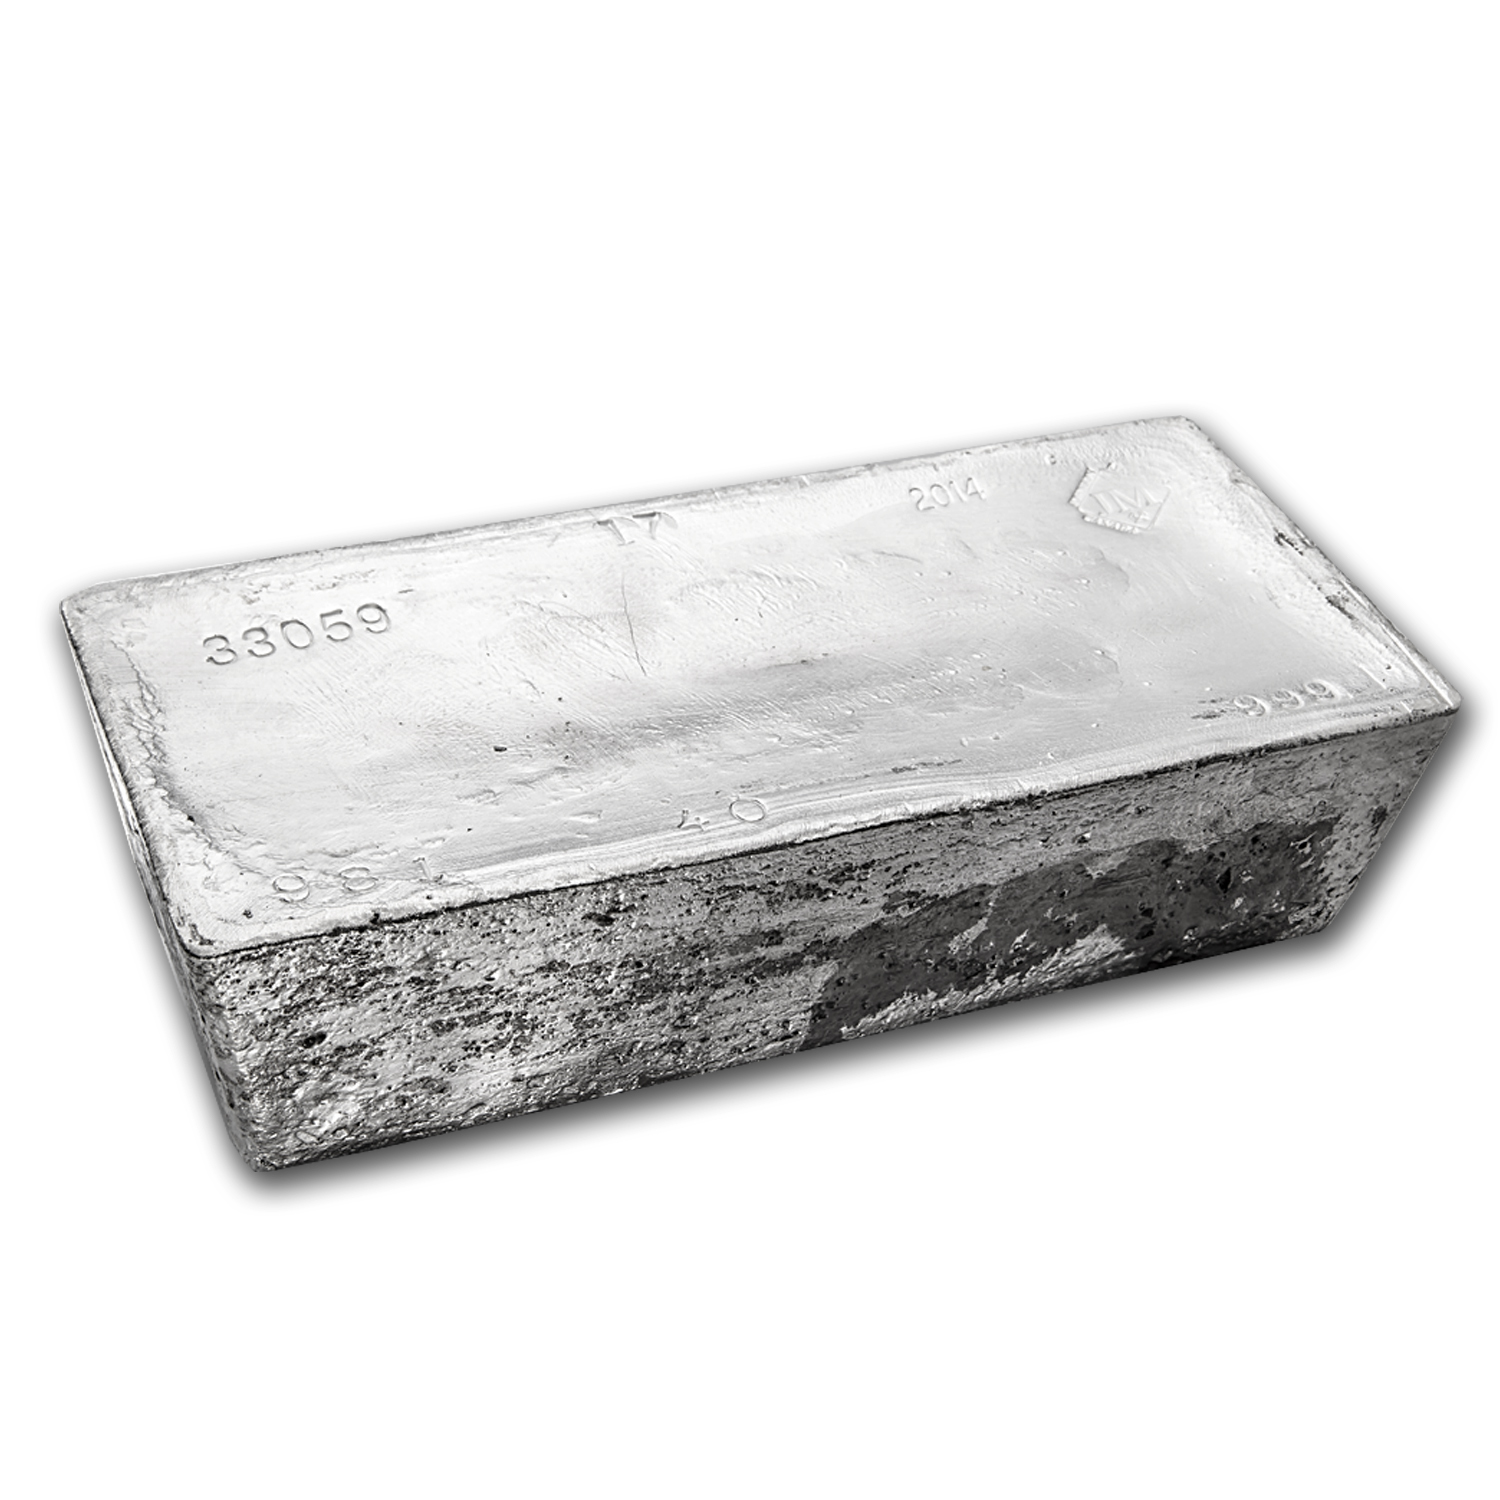 1003.10 oz Silver Bars - Johnson Matthey